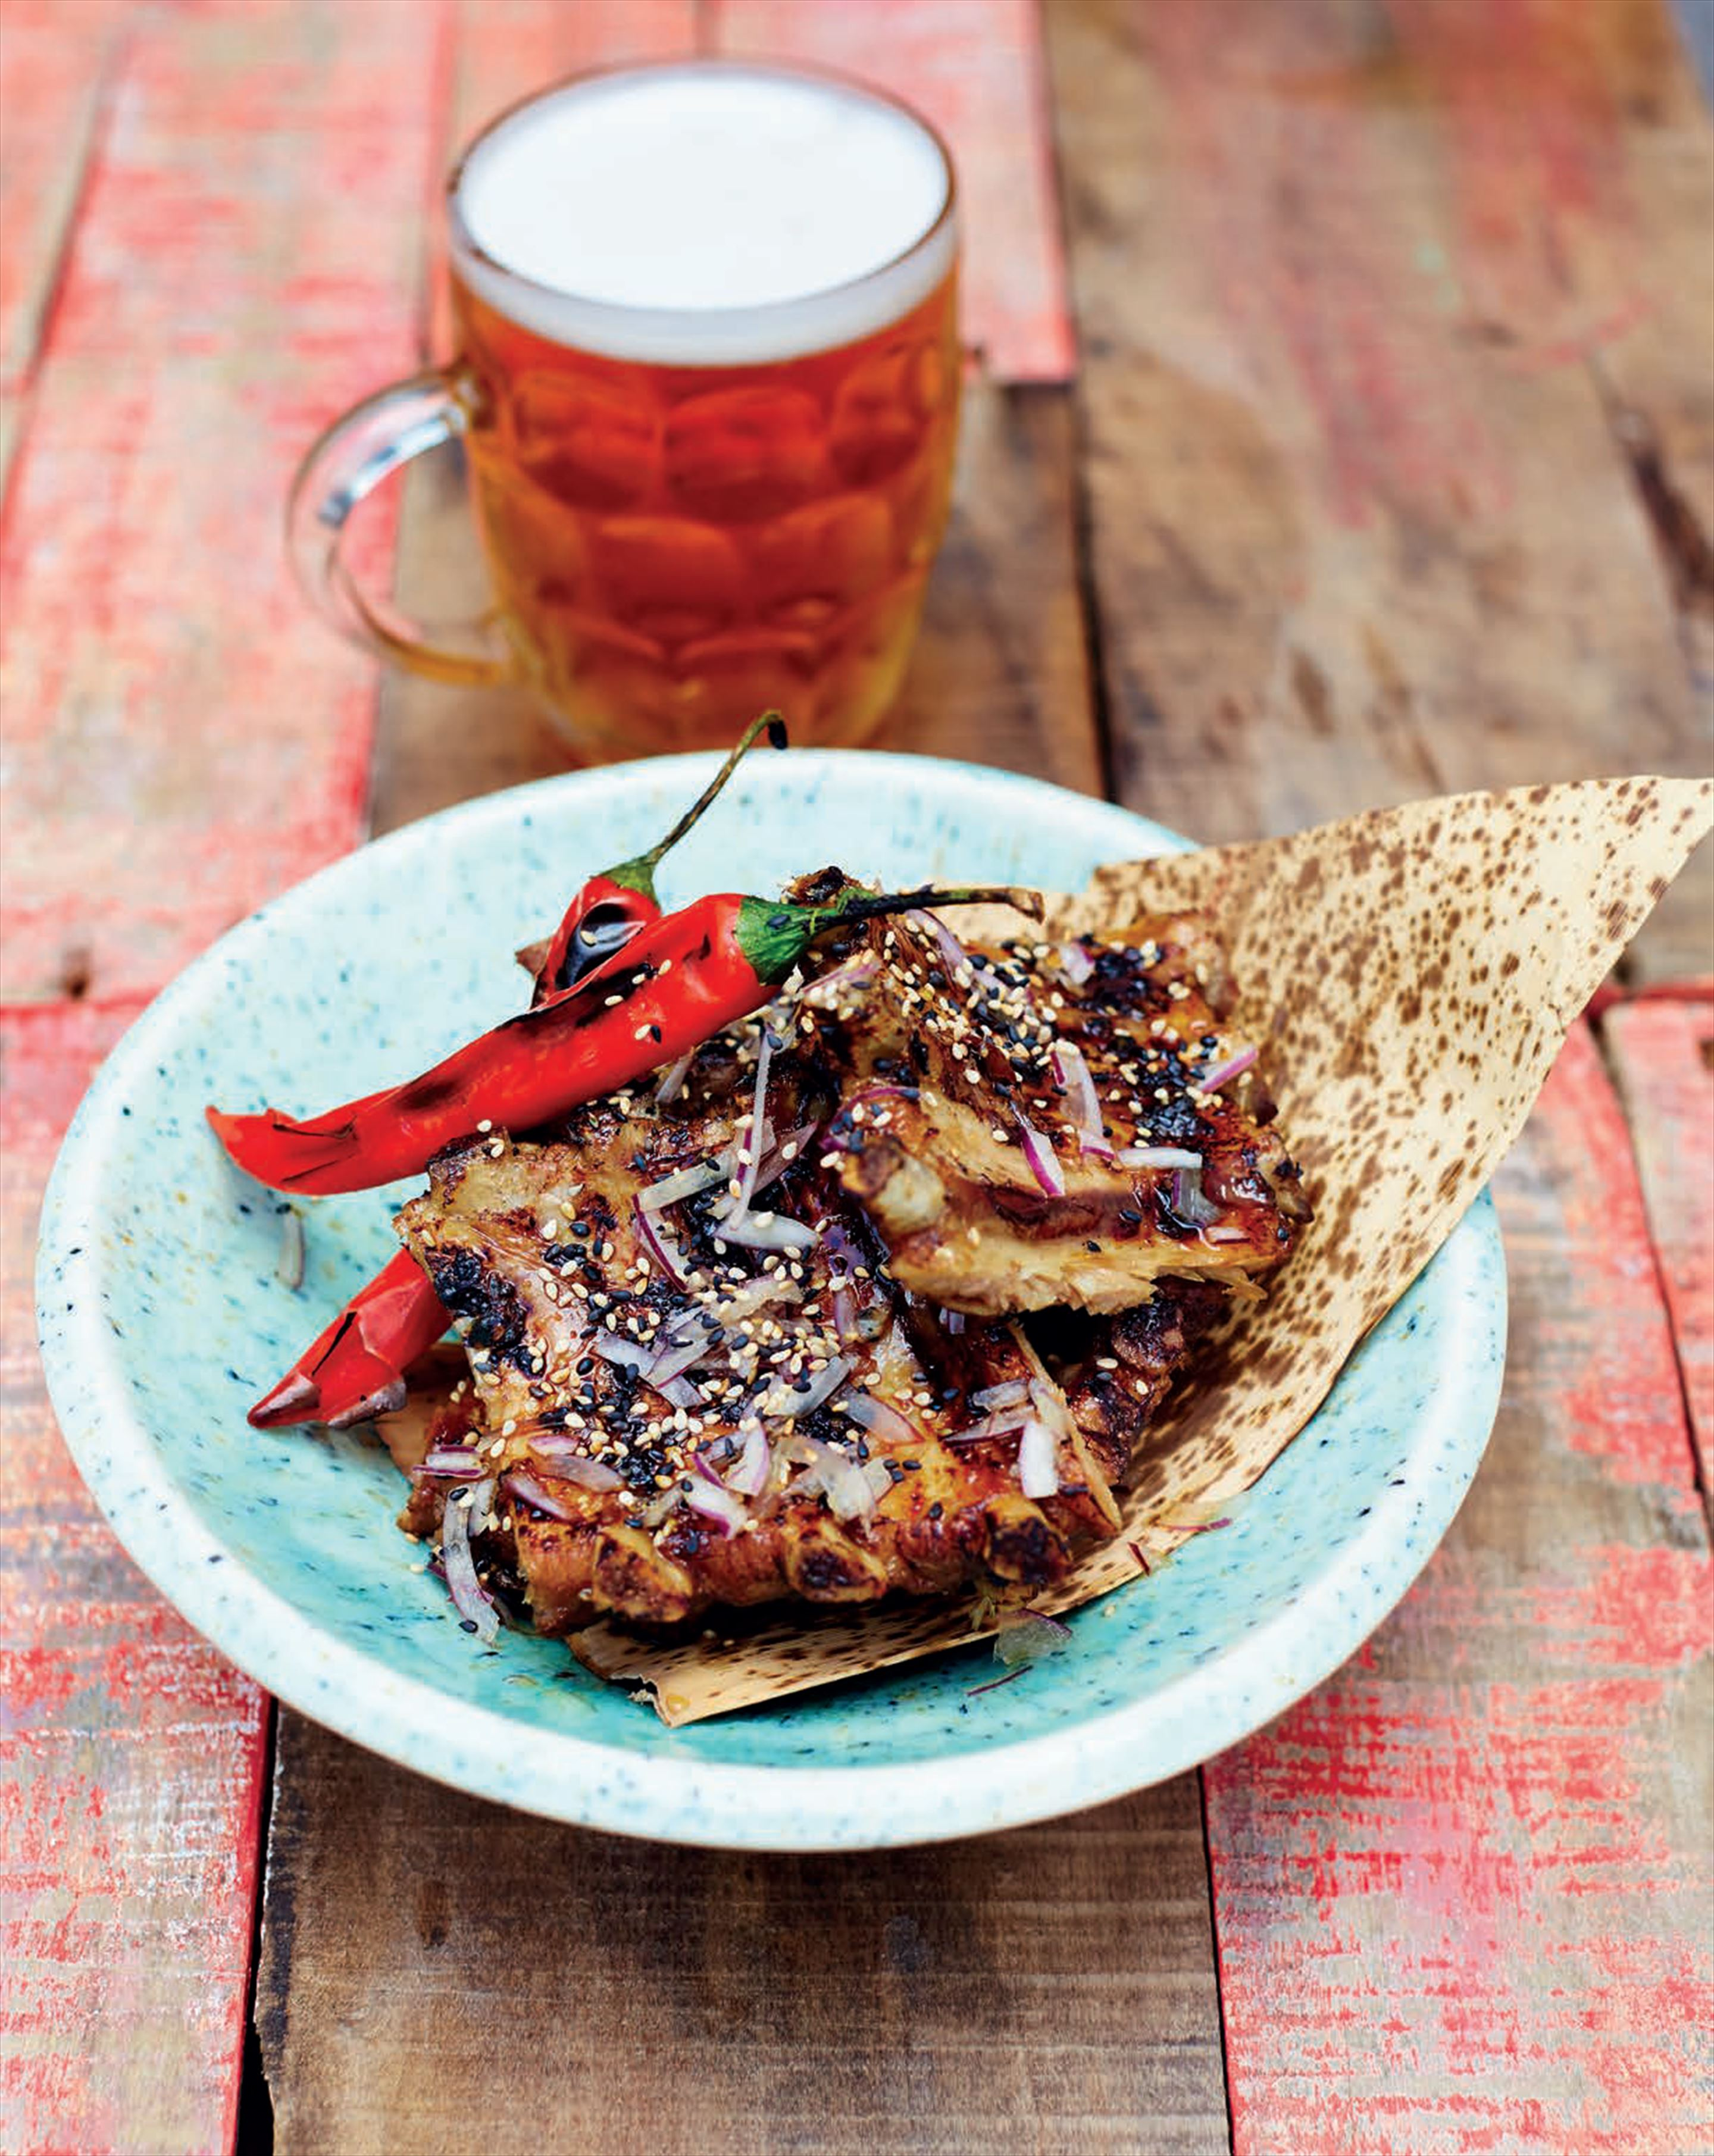 Barbecued pork ribs with sticky honey, soy and ginger glaze